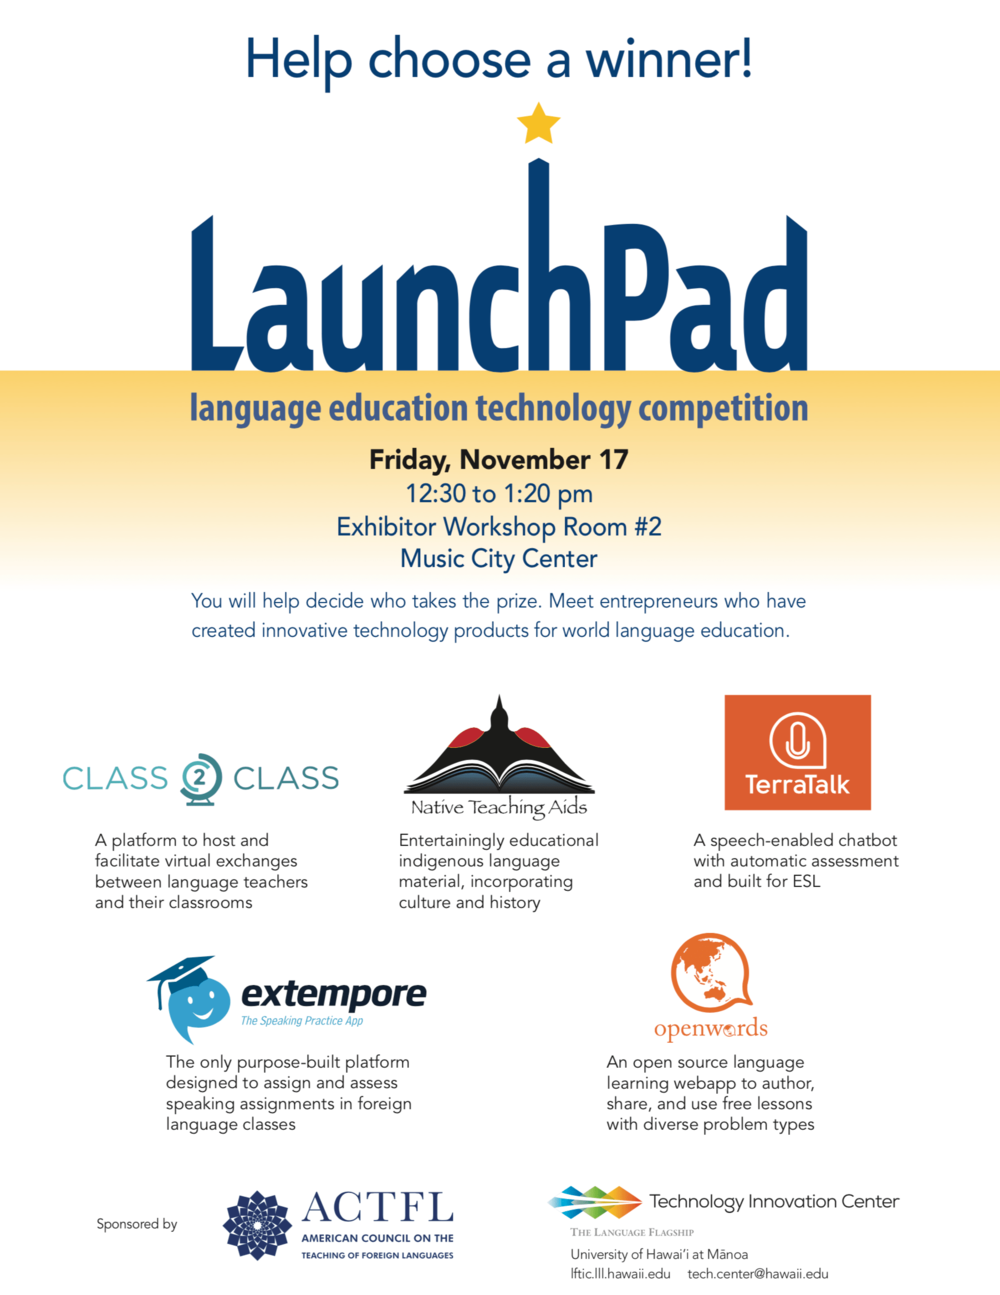 actfl_launchpad.png